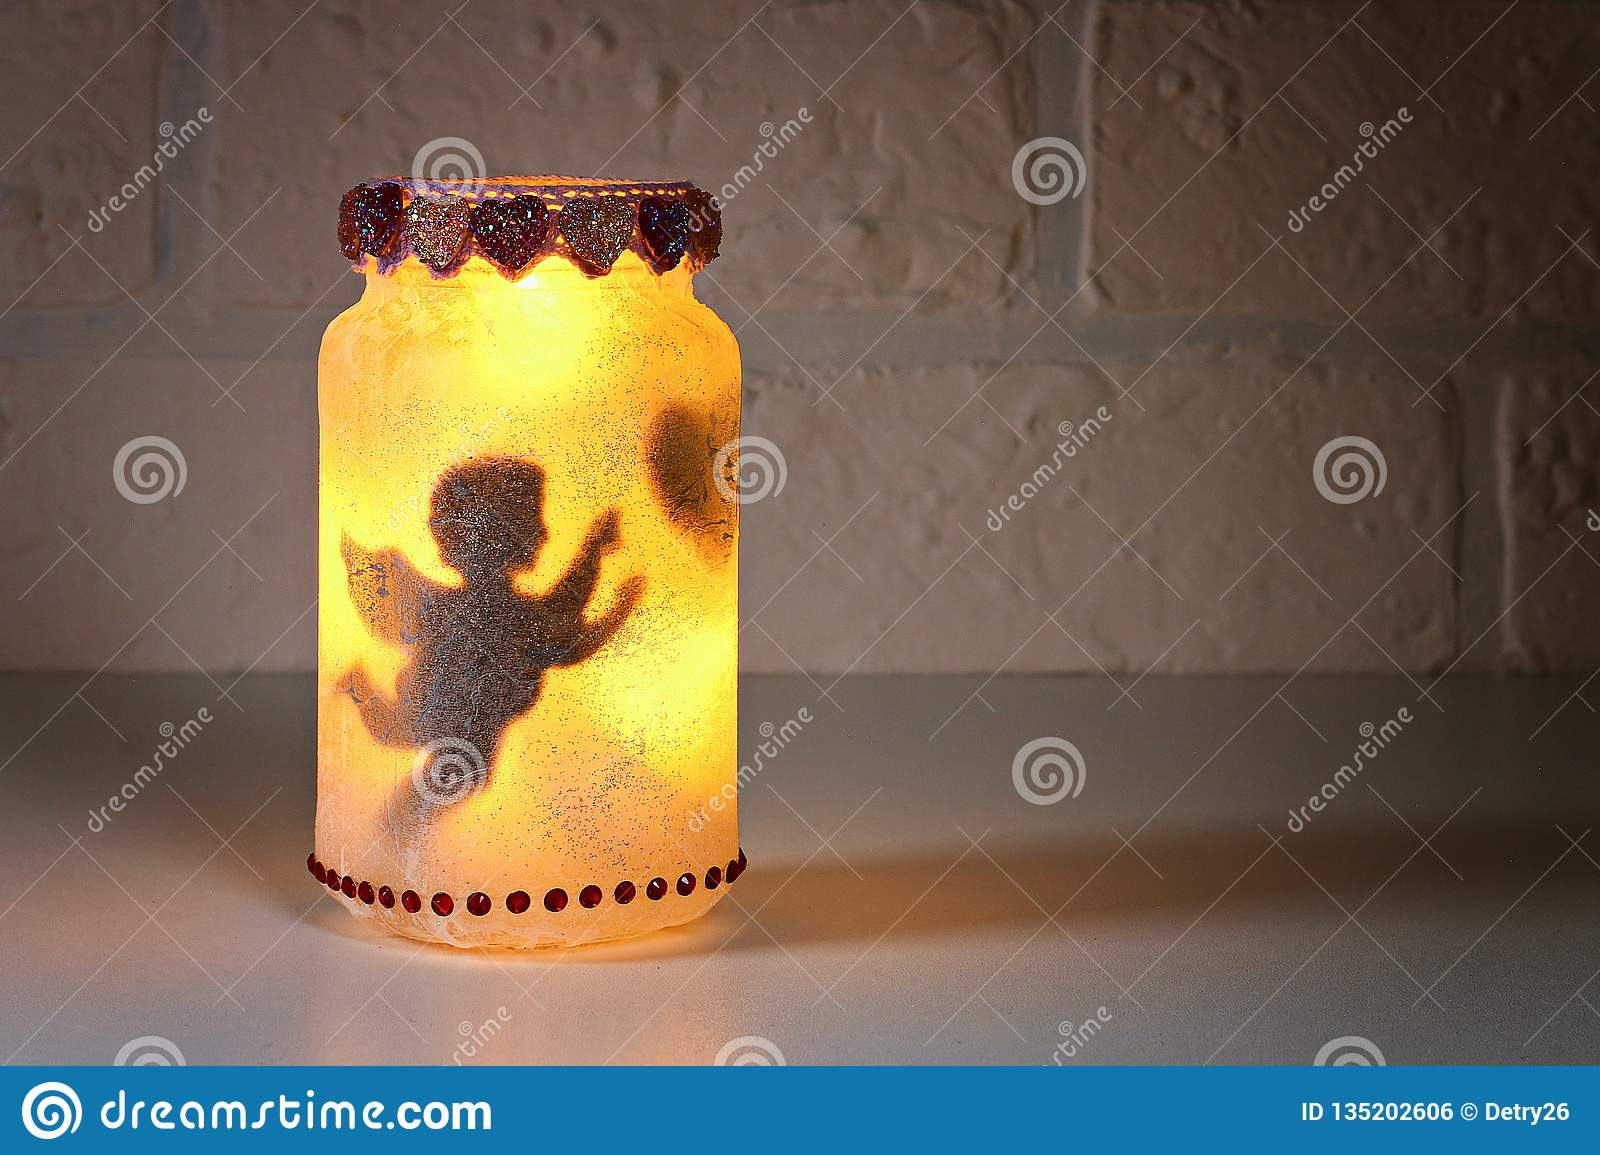 Diy Fairy Jar On White Brick Wall Background Gift Ideas Decor St February 14 Valentines Day Love Stock Photo Image Of Handmade Gift 135202606